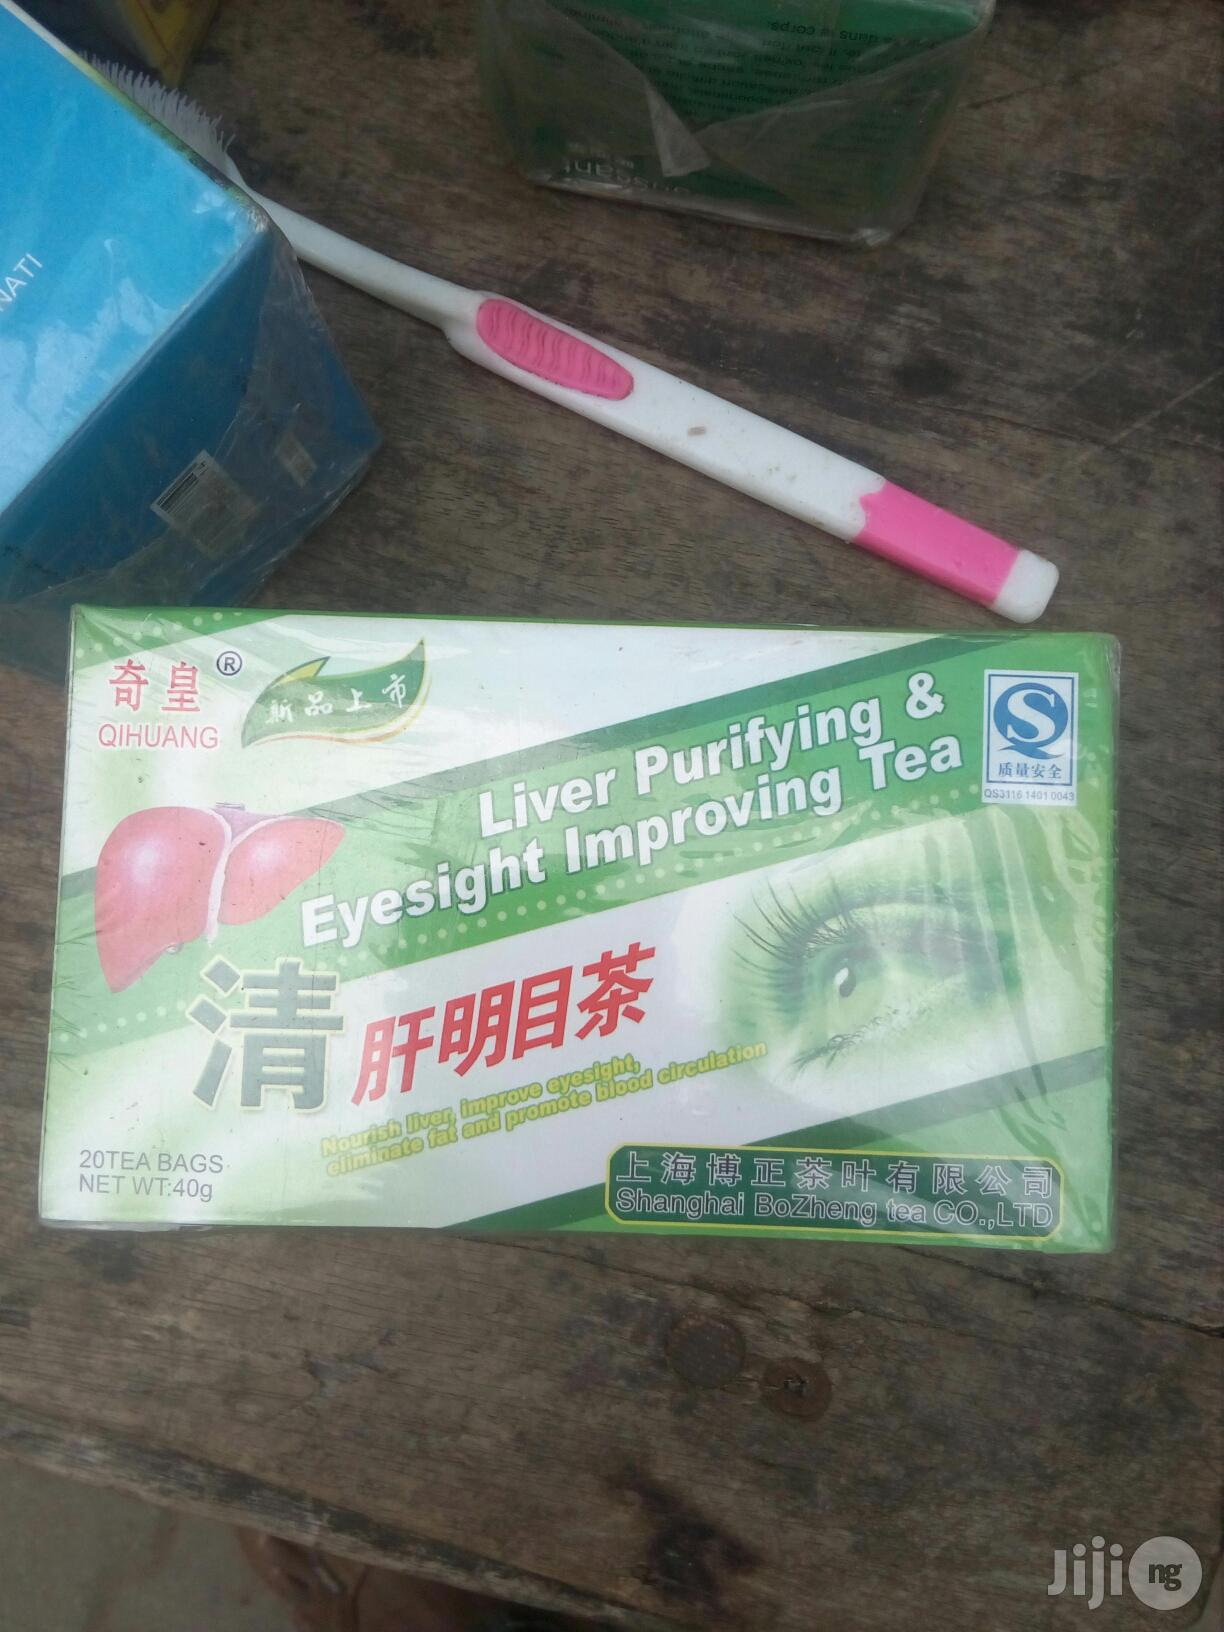 2 Pack Liver Purifying Eyesight Improving Tea (40bags) -80g | Vitamins & Supplements for sale in Apapa, Lagos State, Nigeria